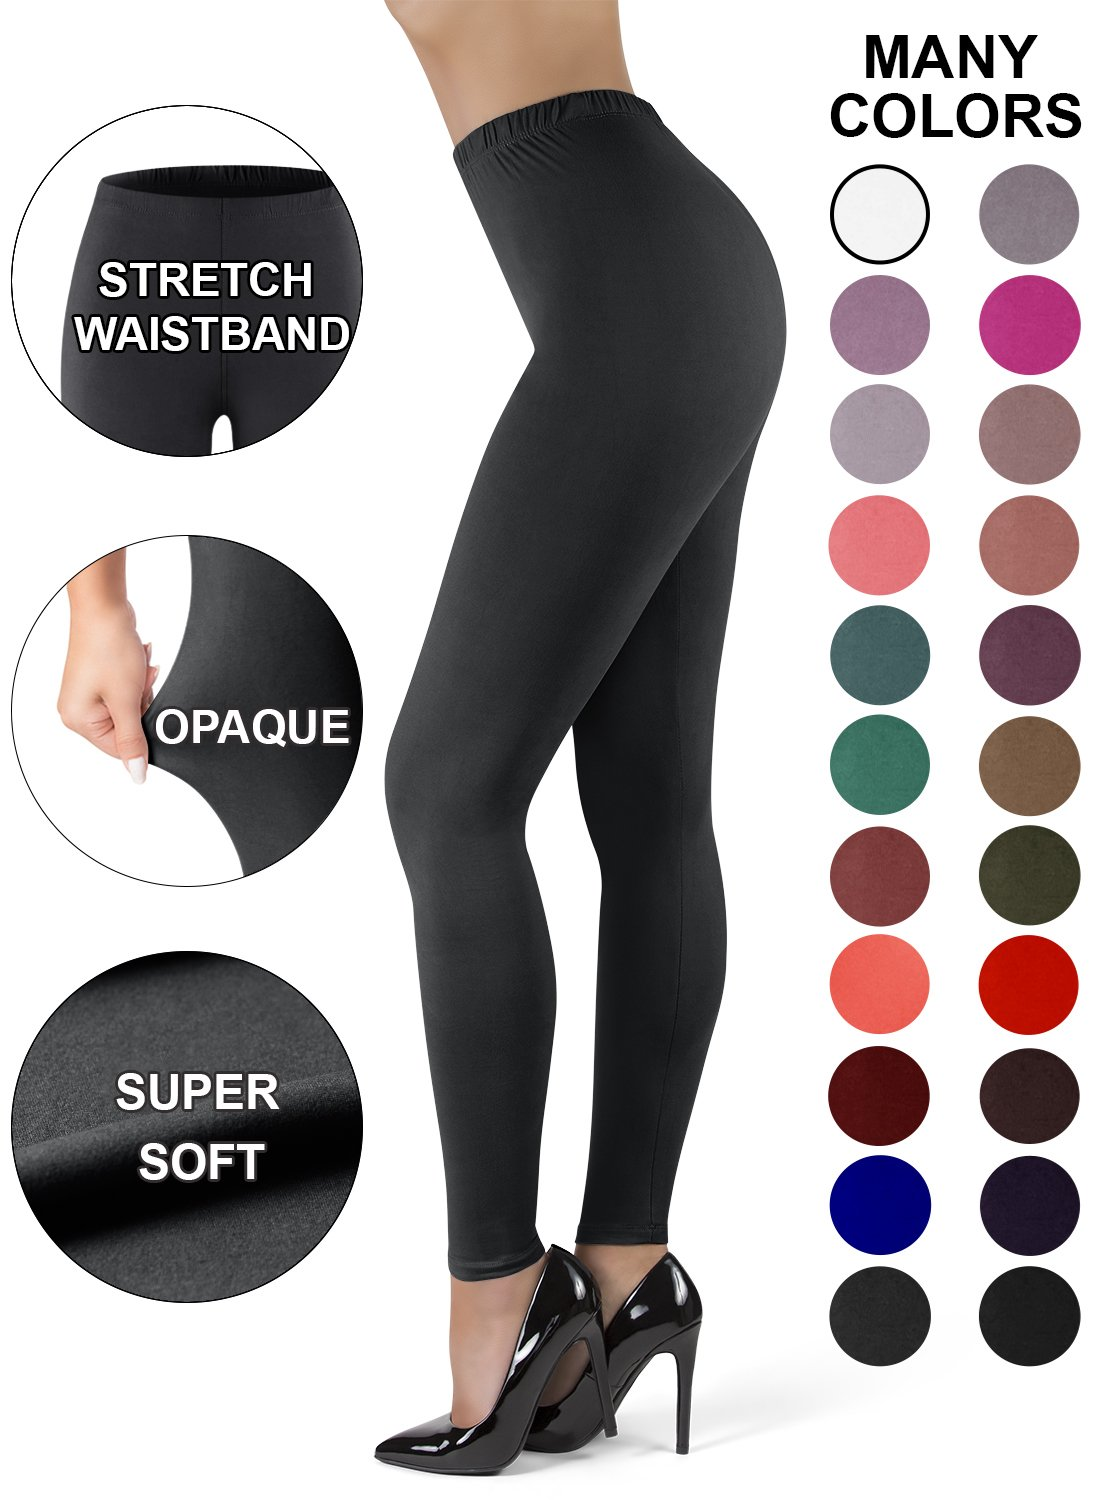 Satina High Waisted Leggings for Women | New Full Length w/Stretch Waistband | Ultra Soft Opaque Non See Through (OneSize, Black)